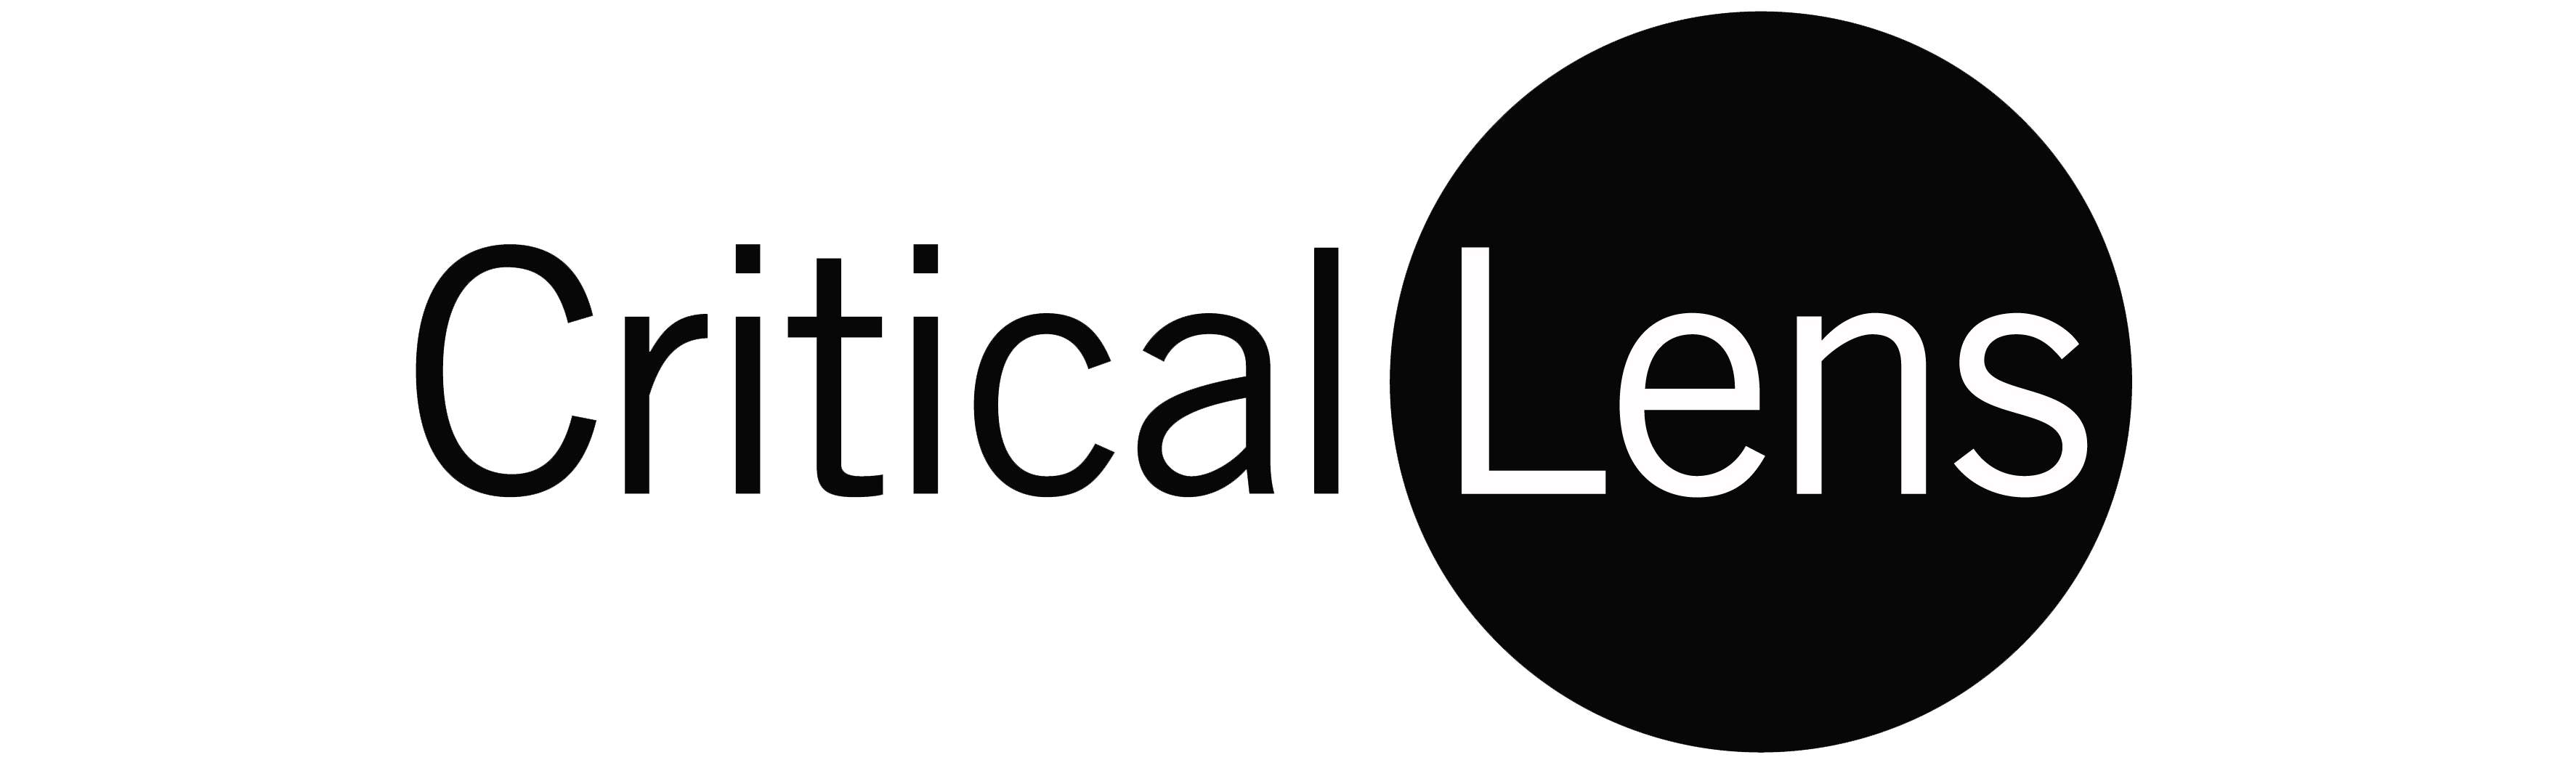 The Critical Lens Research Group